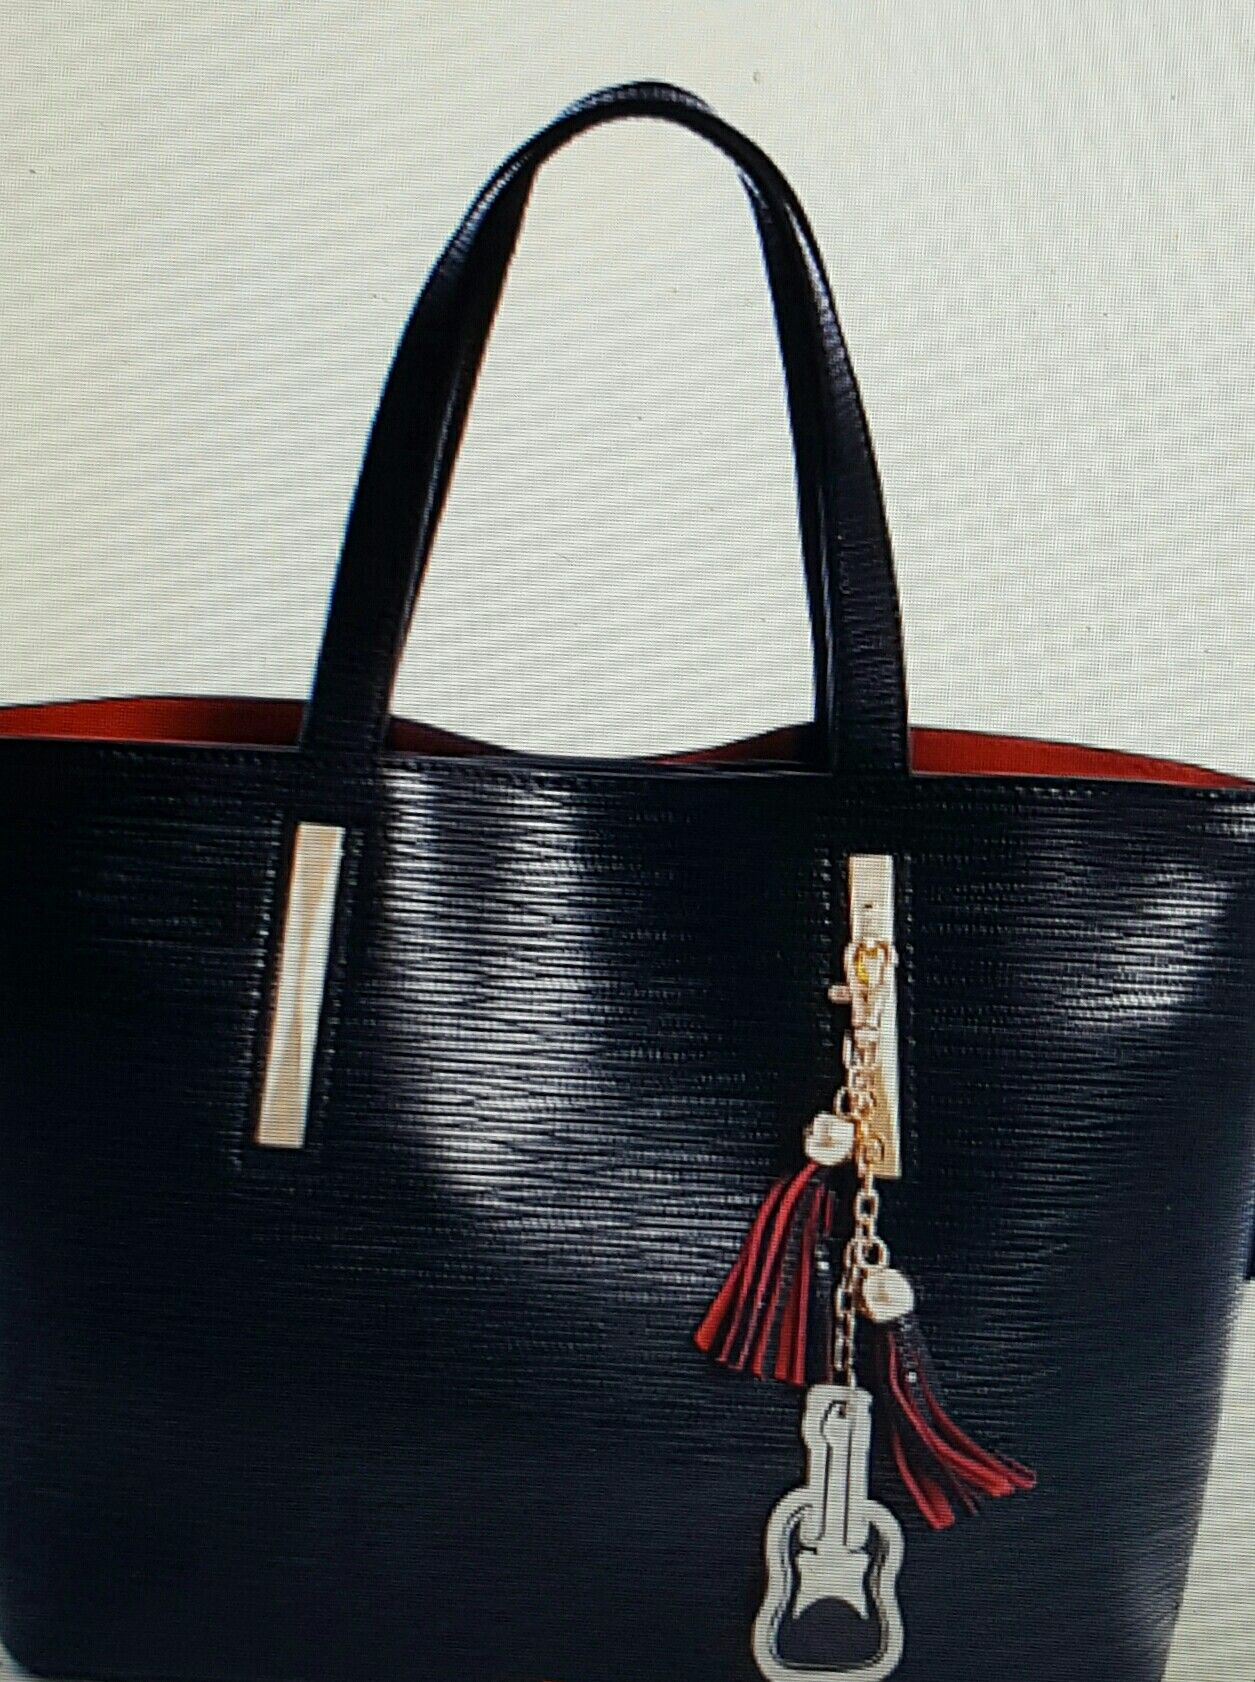 www.tskboutique.com Order this beautiful hobo bag